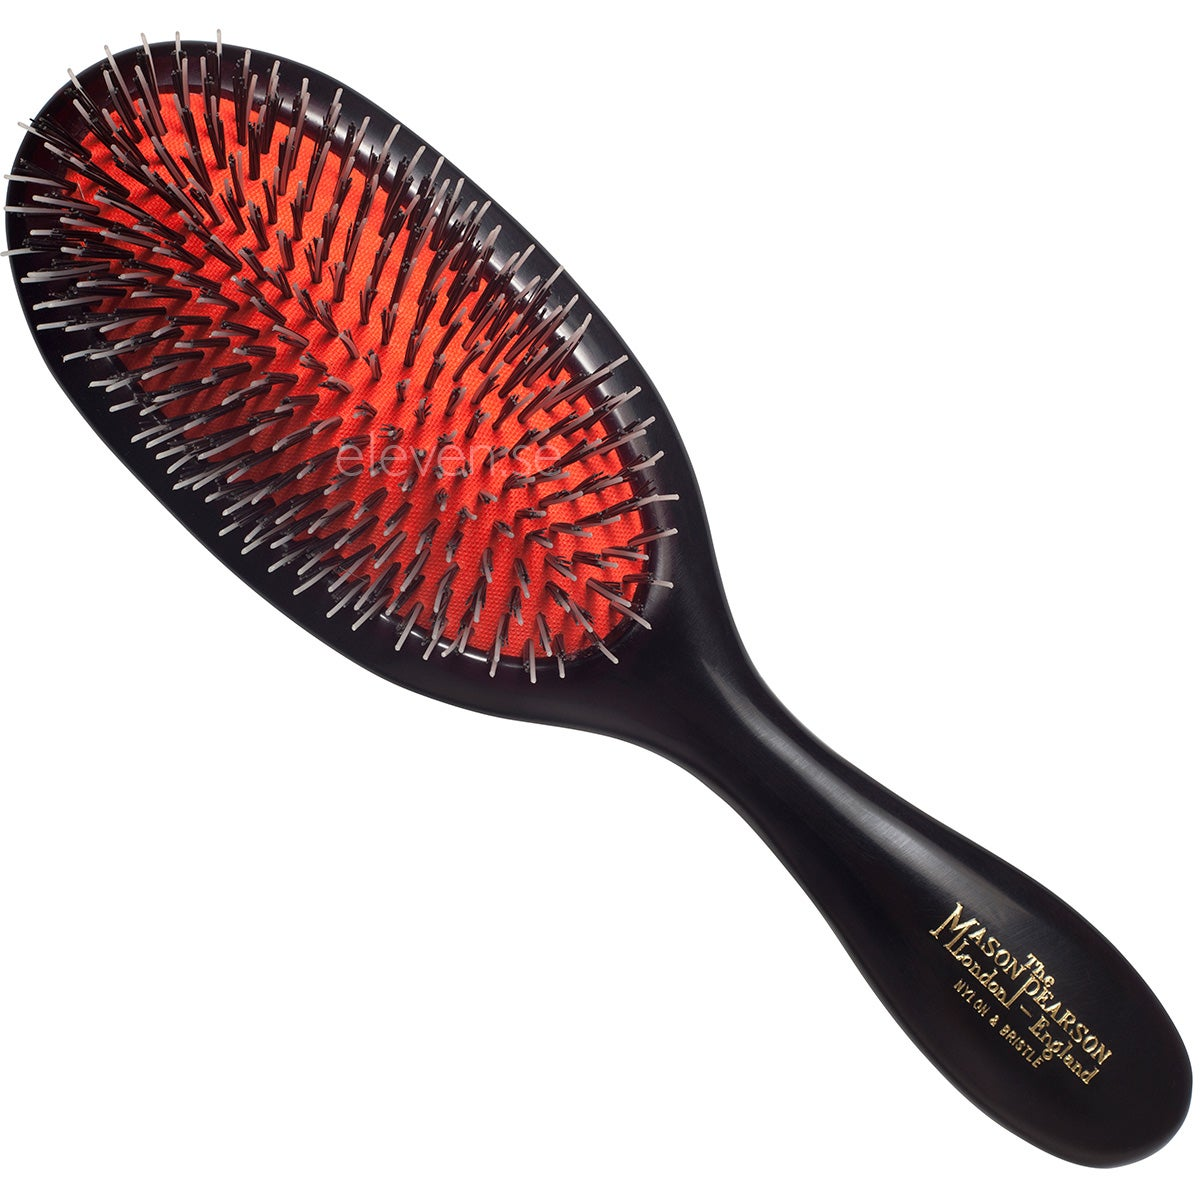 Mason Pearson Handy Bristle & Nylon, Dark Ruby